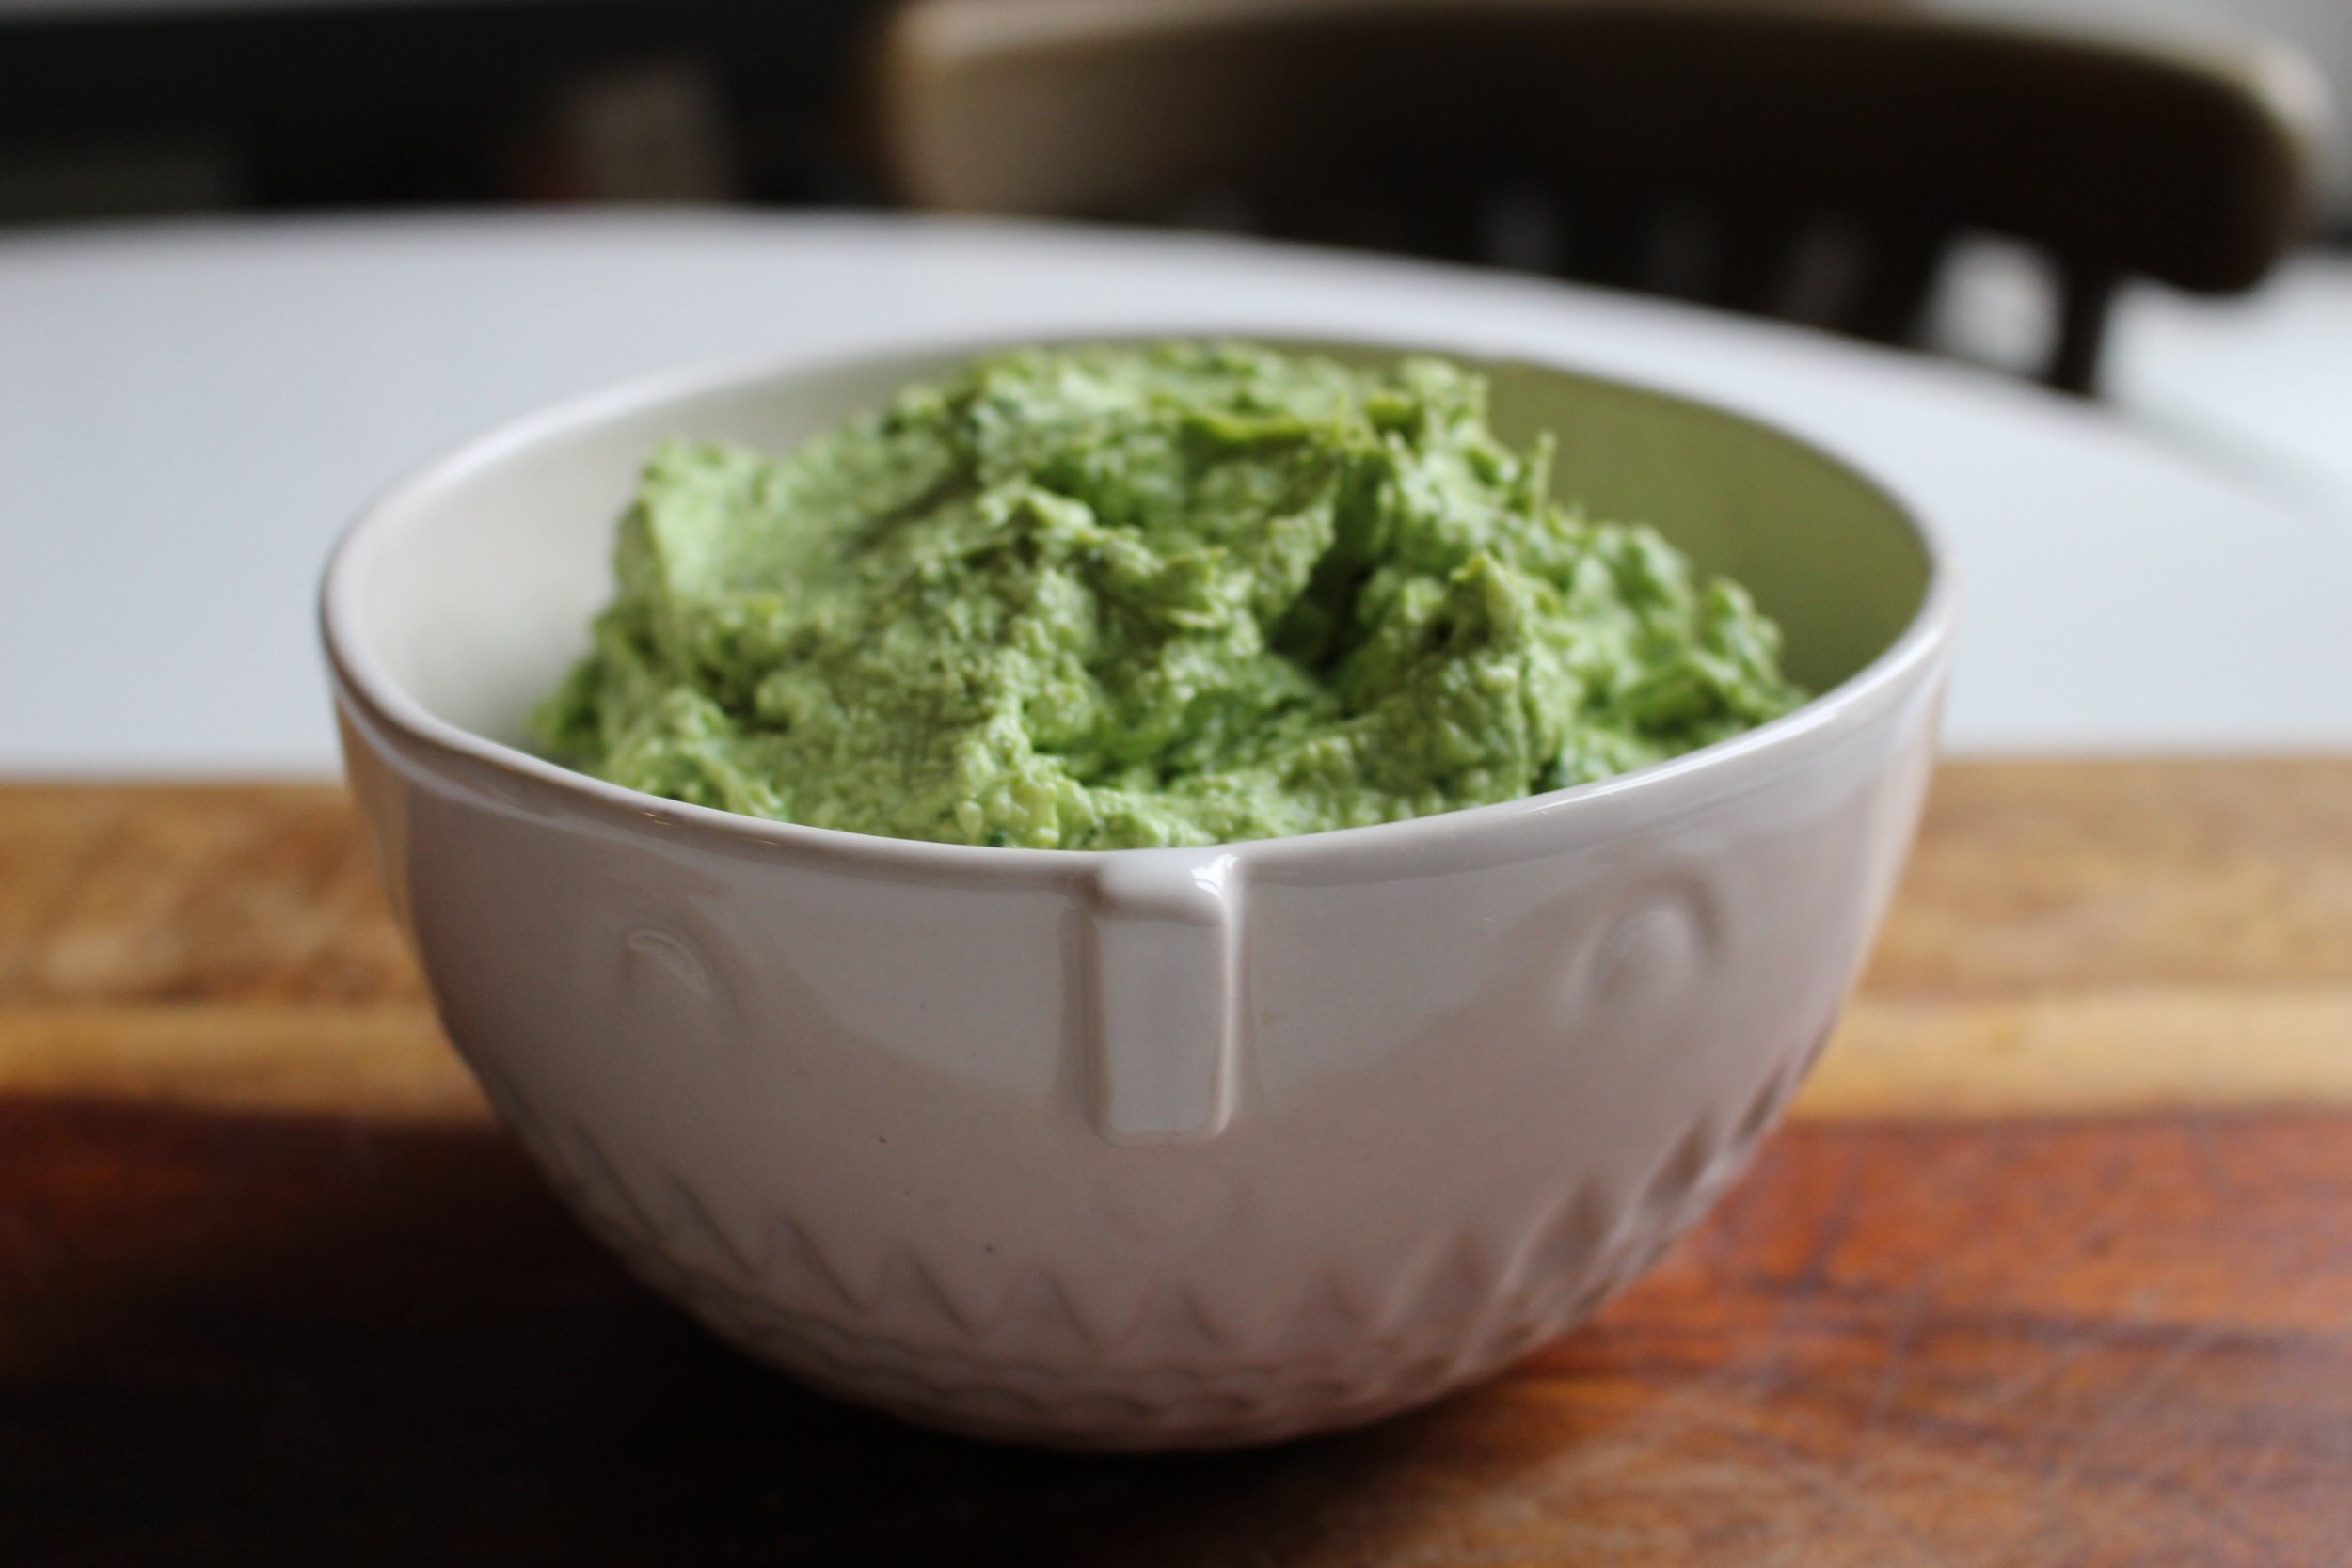 Spinach and artichoke spread | Me & The Moose. This veggie-heavy spread is quick, easy, and versatile for bus weeknights or any night, really. #meandthemoose #spinachartichokedip #spinachandartichoke #diprecipes #healthydips #healthydiprecipes